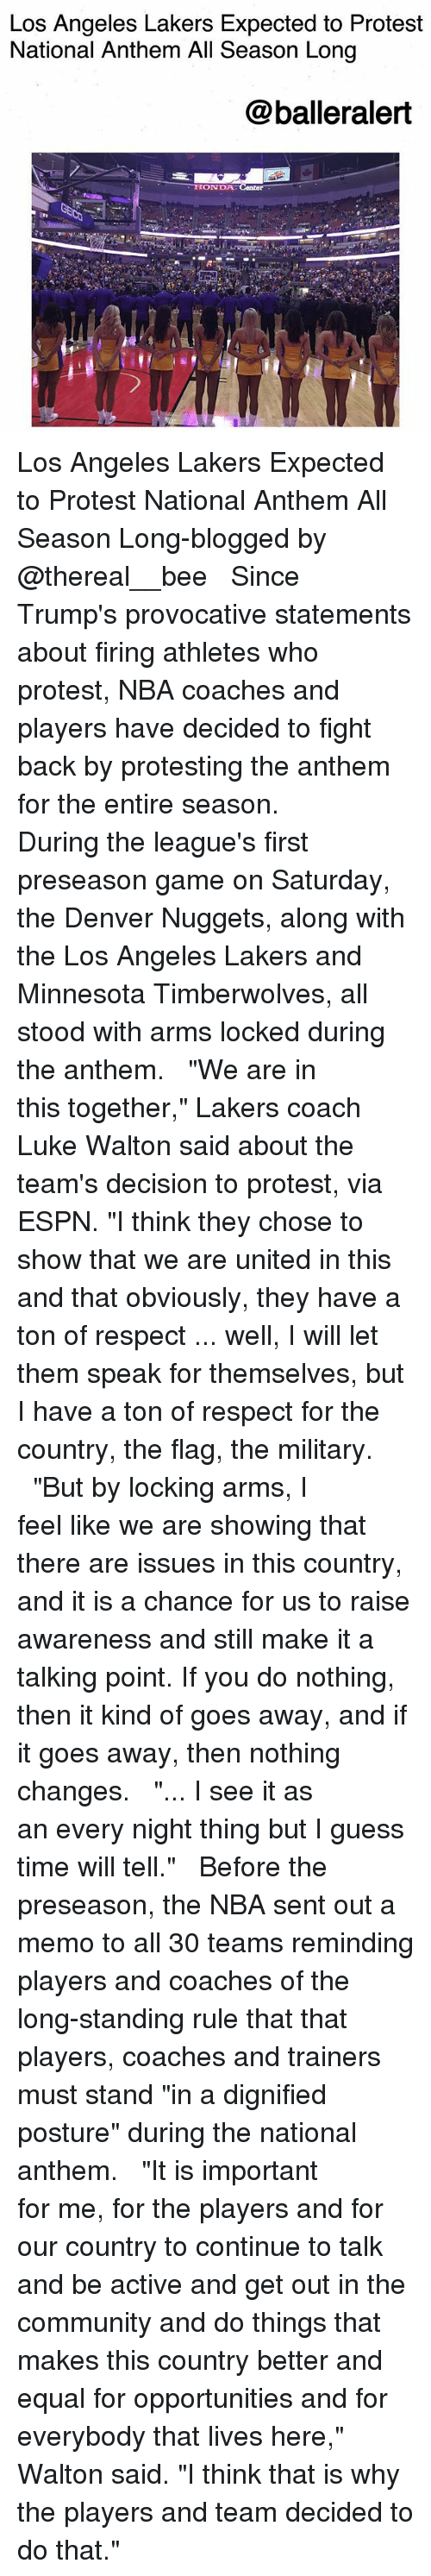 "Community, Espn, and Los Angeles Lakers: Los Angeles Lakers Expected to Protest  National Anthem All Season Long  @balleralert  ONDA Los Angeles Lakers Expected to Protest National Anthem All Season Long-blogged by @thereal__bee ⠀⠀⠀⠀⠀⠀⠀⠀⠀ ⠀⠀ Since Trump's provocative statements about firing athletes who protest, NBA coaches and players have decided to fight back by protesting the anthem for the entire season. ⠀⠀⠀⠀⠀⠀⠀⠀⠀ ⠀⠀ During the league's first preseason game on Saturday, the Denver Nuggets, along with the Los Angeles Lakers and Minnesota Timberwolves, all stood with arms locked during the anthem. ⠀⠀⠀⠀⠀⠀⠀⠀⠀ ⠀⠀ ""We are in this together,"" Lakers coach Luke Walton said about the team's decision to protest, via ESPN. ""I think they chose to show that we are united in this and that obviously, they have a ton of respect ... well, I will let them speak for themselves, but I have a ton of respect for the country, the flag, the military. ⠀⠀⠀⠀⠀⠀⠀⠀⠀ ⠀⠀ ""But by locking arms, I feel like we are showing that there are issues in this country, and it is a chance for us to raise awareness and still make it a talking point. If you do nothing, then it kind of goes away, and if it goes away, then nothing changes. ⠀⠀⠀⠀⠀⠀⠀⠀⠀ ⠀⠀ ""... I see it as an every night thing but I guess time will tell."" ⠀⠀⠀⠀⠀⠀⠀⠀⠀ ⠀⠀ Before the preseason, the NBA sent out a memo to all 30 teams reminding players and coaches of the long-standing rule that that players, coaches and trainers must stand ""in a dignified posture"" during the national anthem. ⠀⠀⠀⠀⠀⠀⠀⠀⠀ ⠀⠀ ""It is important for me, for the players and for our country to continue to talk and be active and get out in the community and do things that makes this country better and equal for opportunities and for everybody that lives here,"" Walton said. ""I think that is why the players and team decided to do that."""